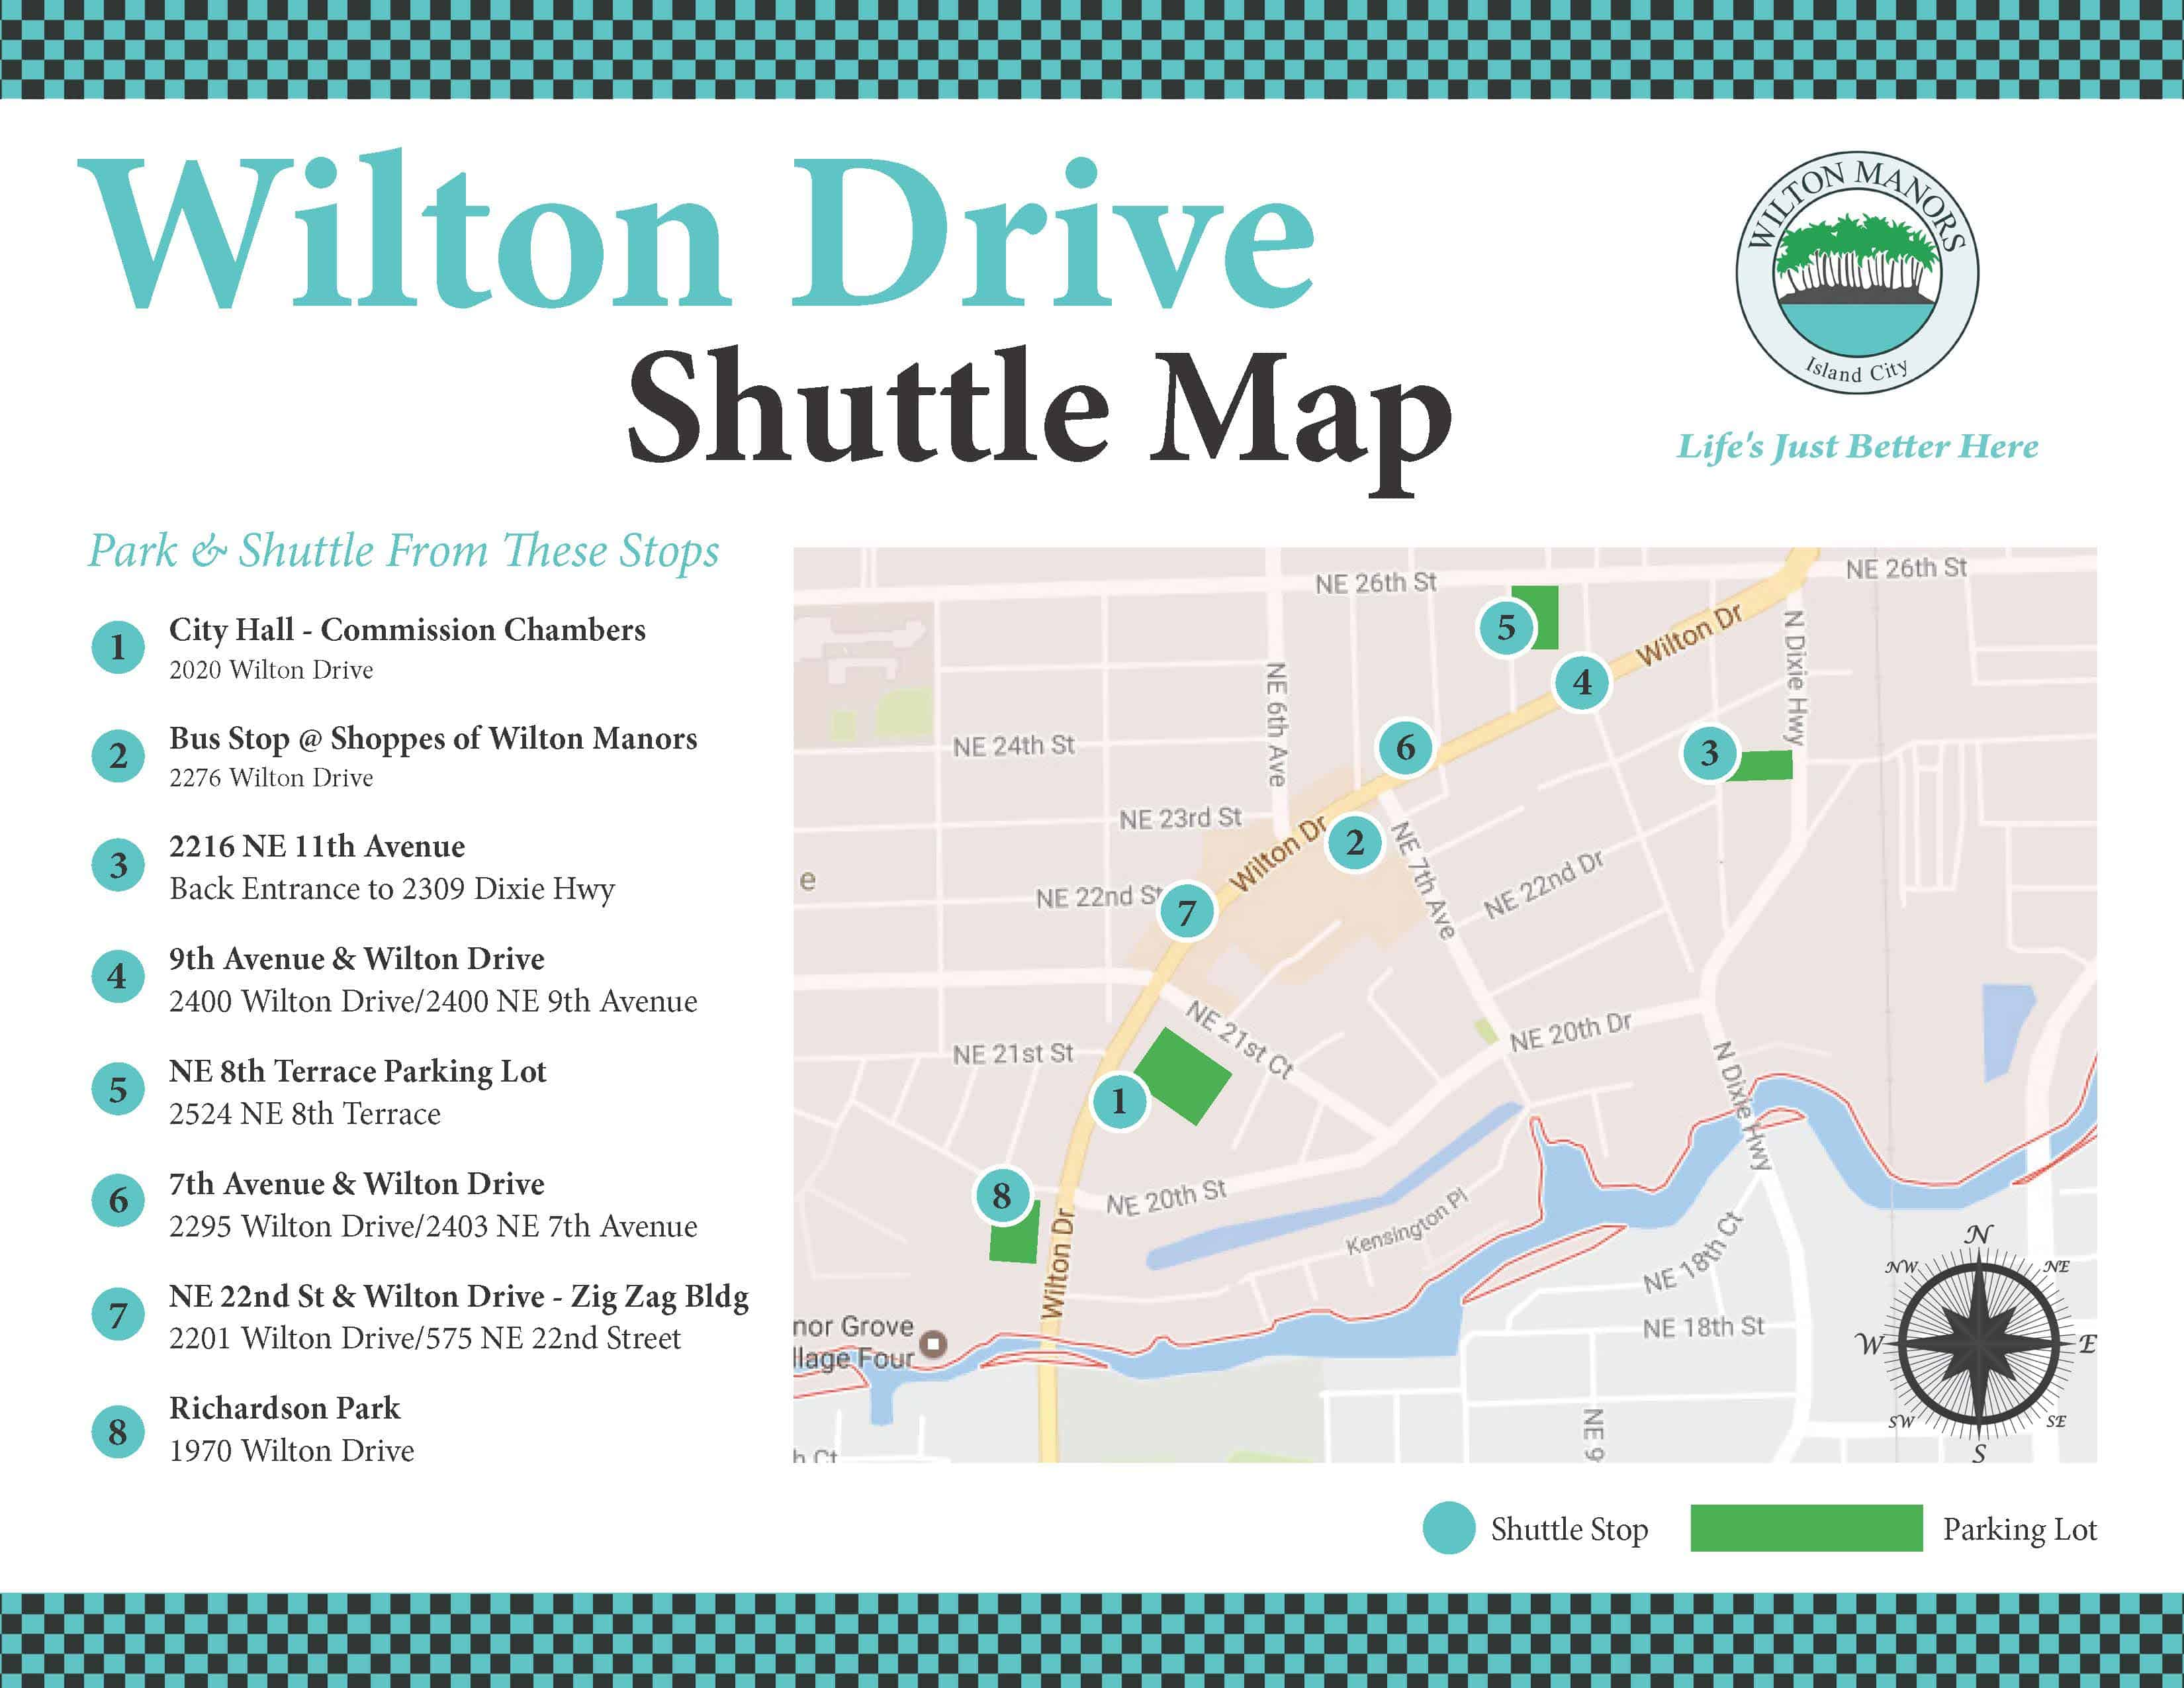 Wilton Manors Shuttle Map FINAL Broward PR on map of essex, map of westbury, map of boca, map of waukee, map of alabaster, map of chilton county, map of winsted, map of warren, map of cromwell, map of pound ridge, map of turtle lake, map of cambridge, map of woodstock, map of fort totten, map of webster city, map of city of newburgh, map of frye island, map of new london, map of new haven county, map of york,